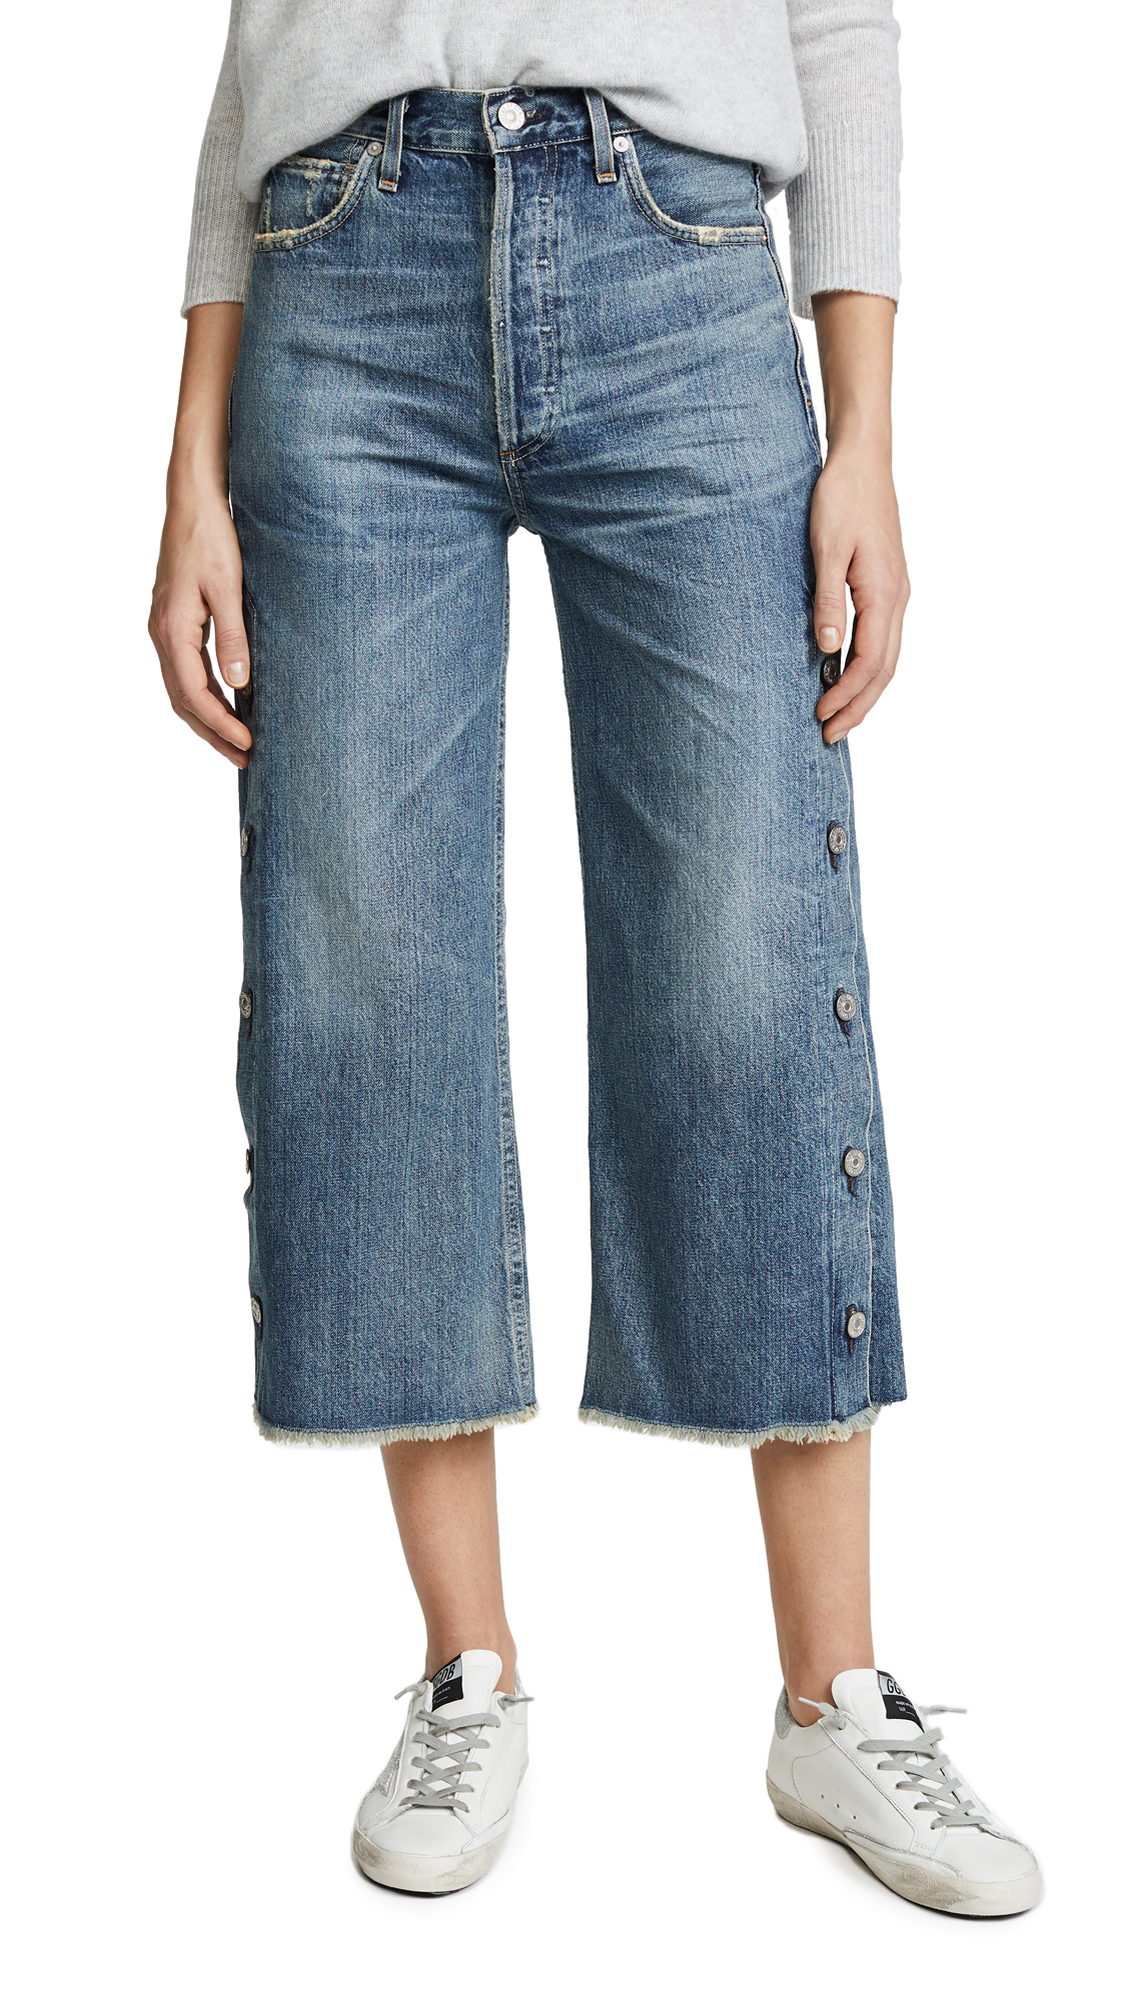 CITIZENS OF HUMANITY Faded Buttoned Cropped Jeans in Blue